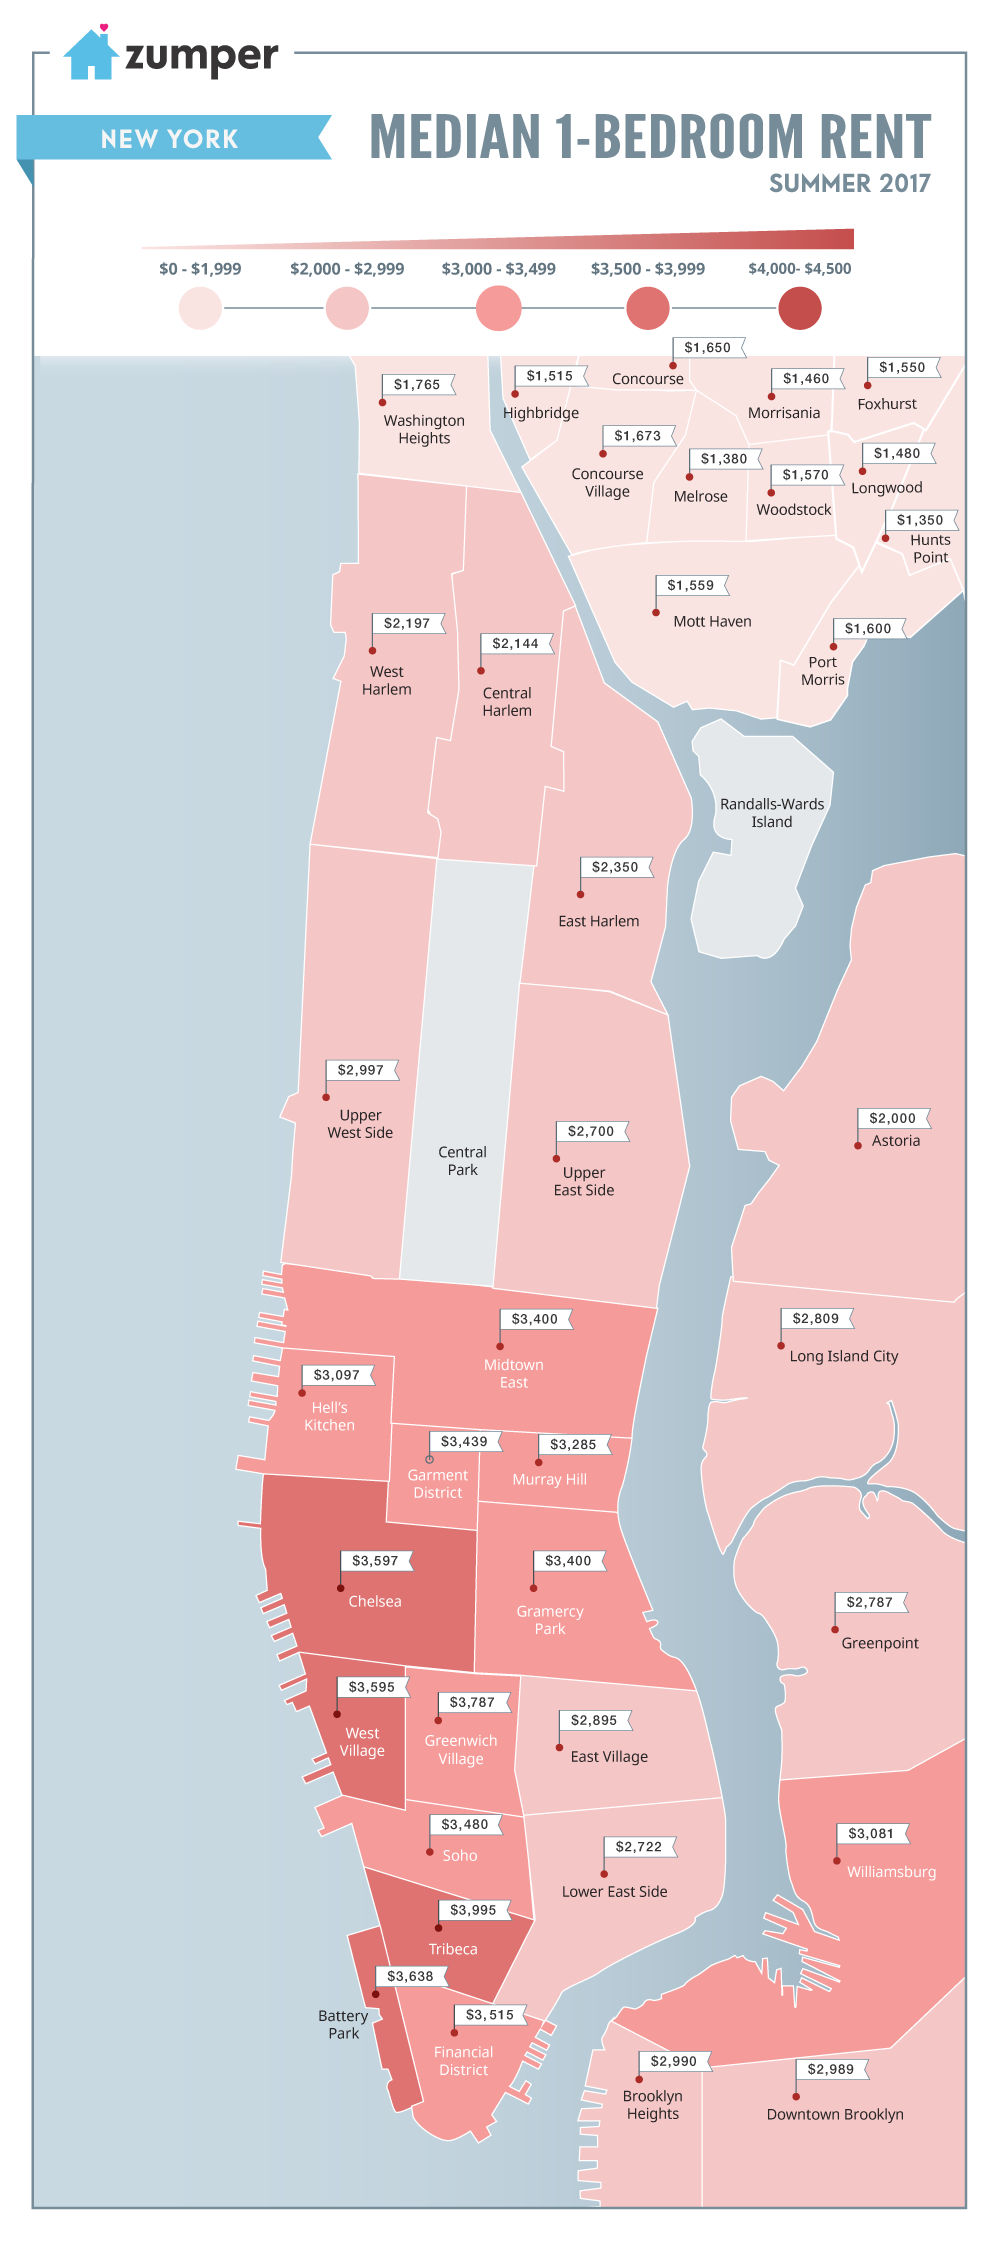 Comparing Manhattan And Brooklyn 1br Rents Across